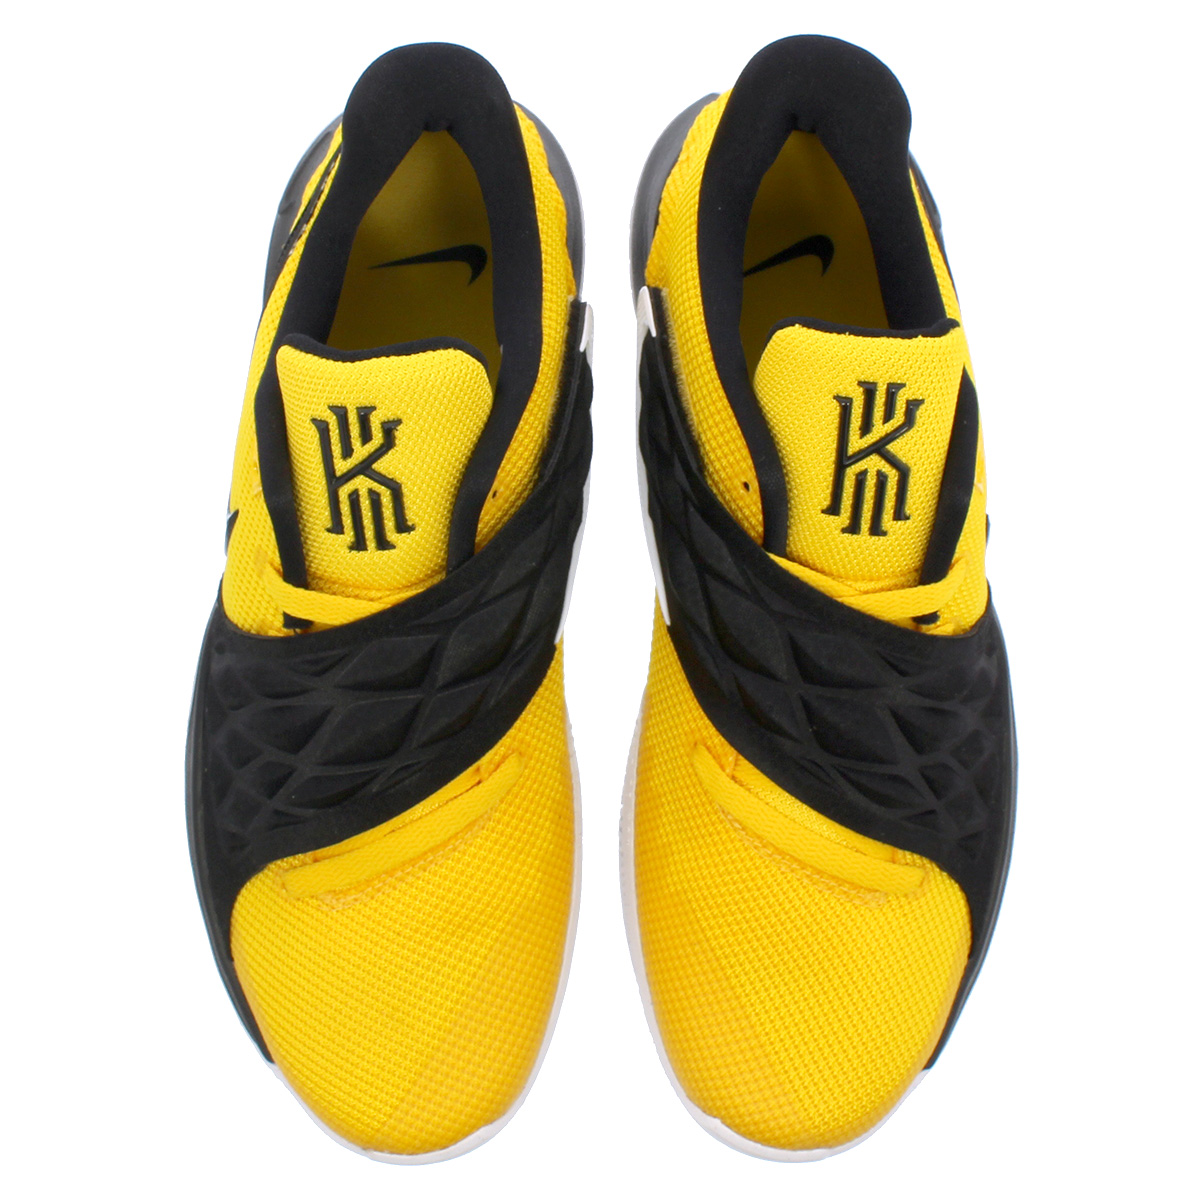 069570499127 LOWTEX PLUS  NIKE KYRIE 4 LOW Nike chi Lee 4 low AMARILLO BLACK ...